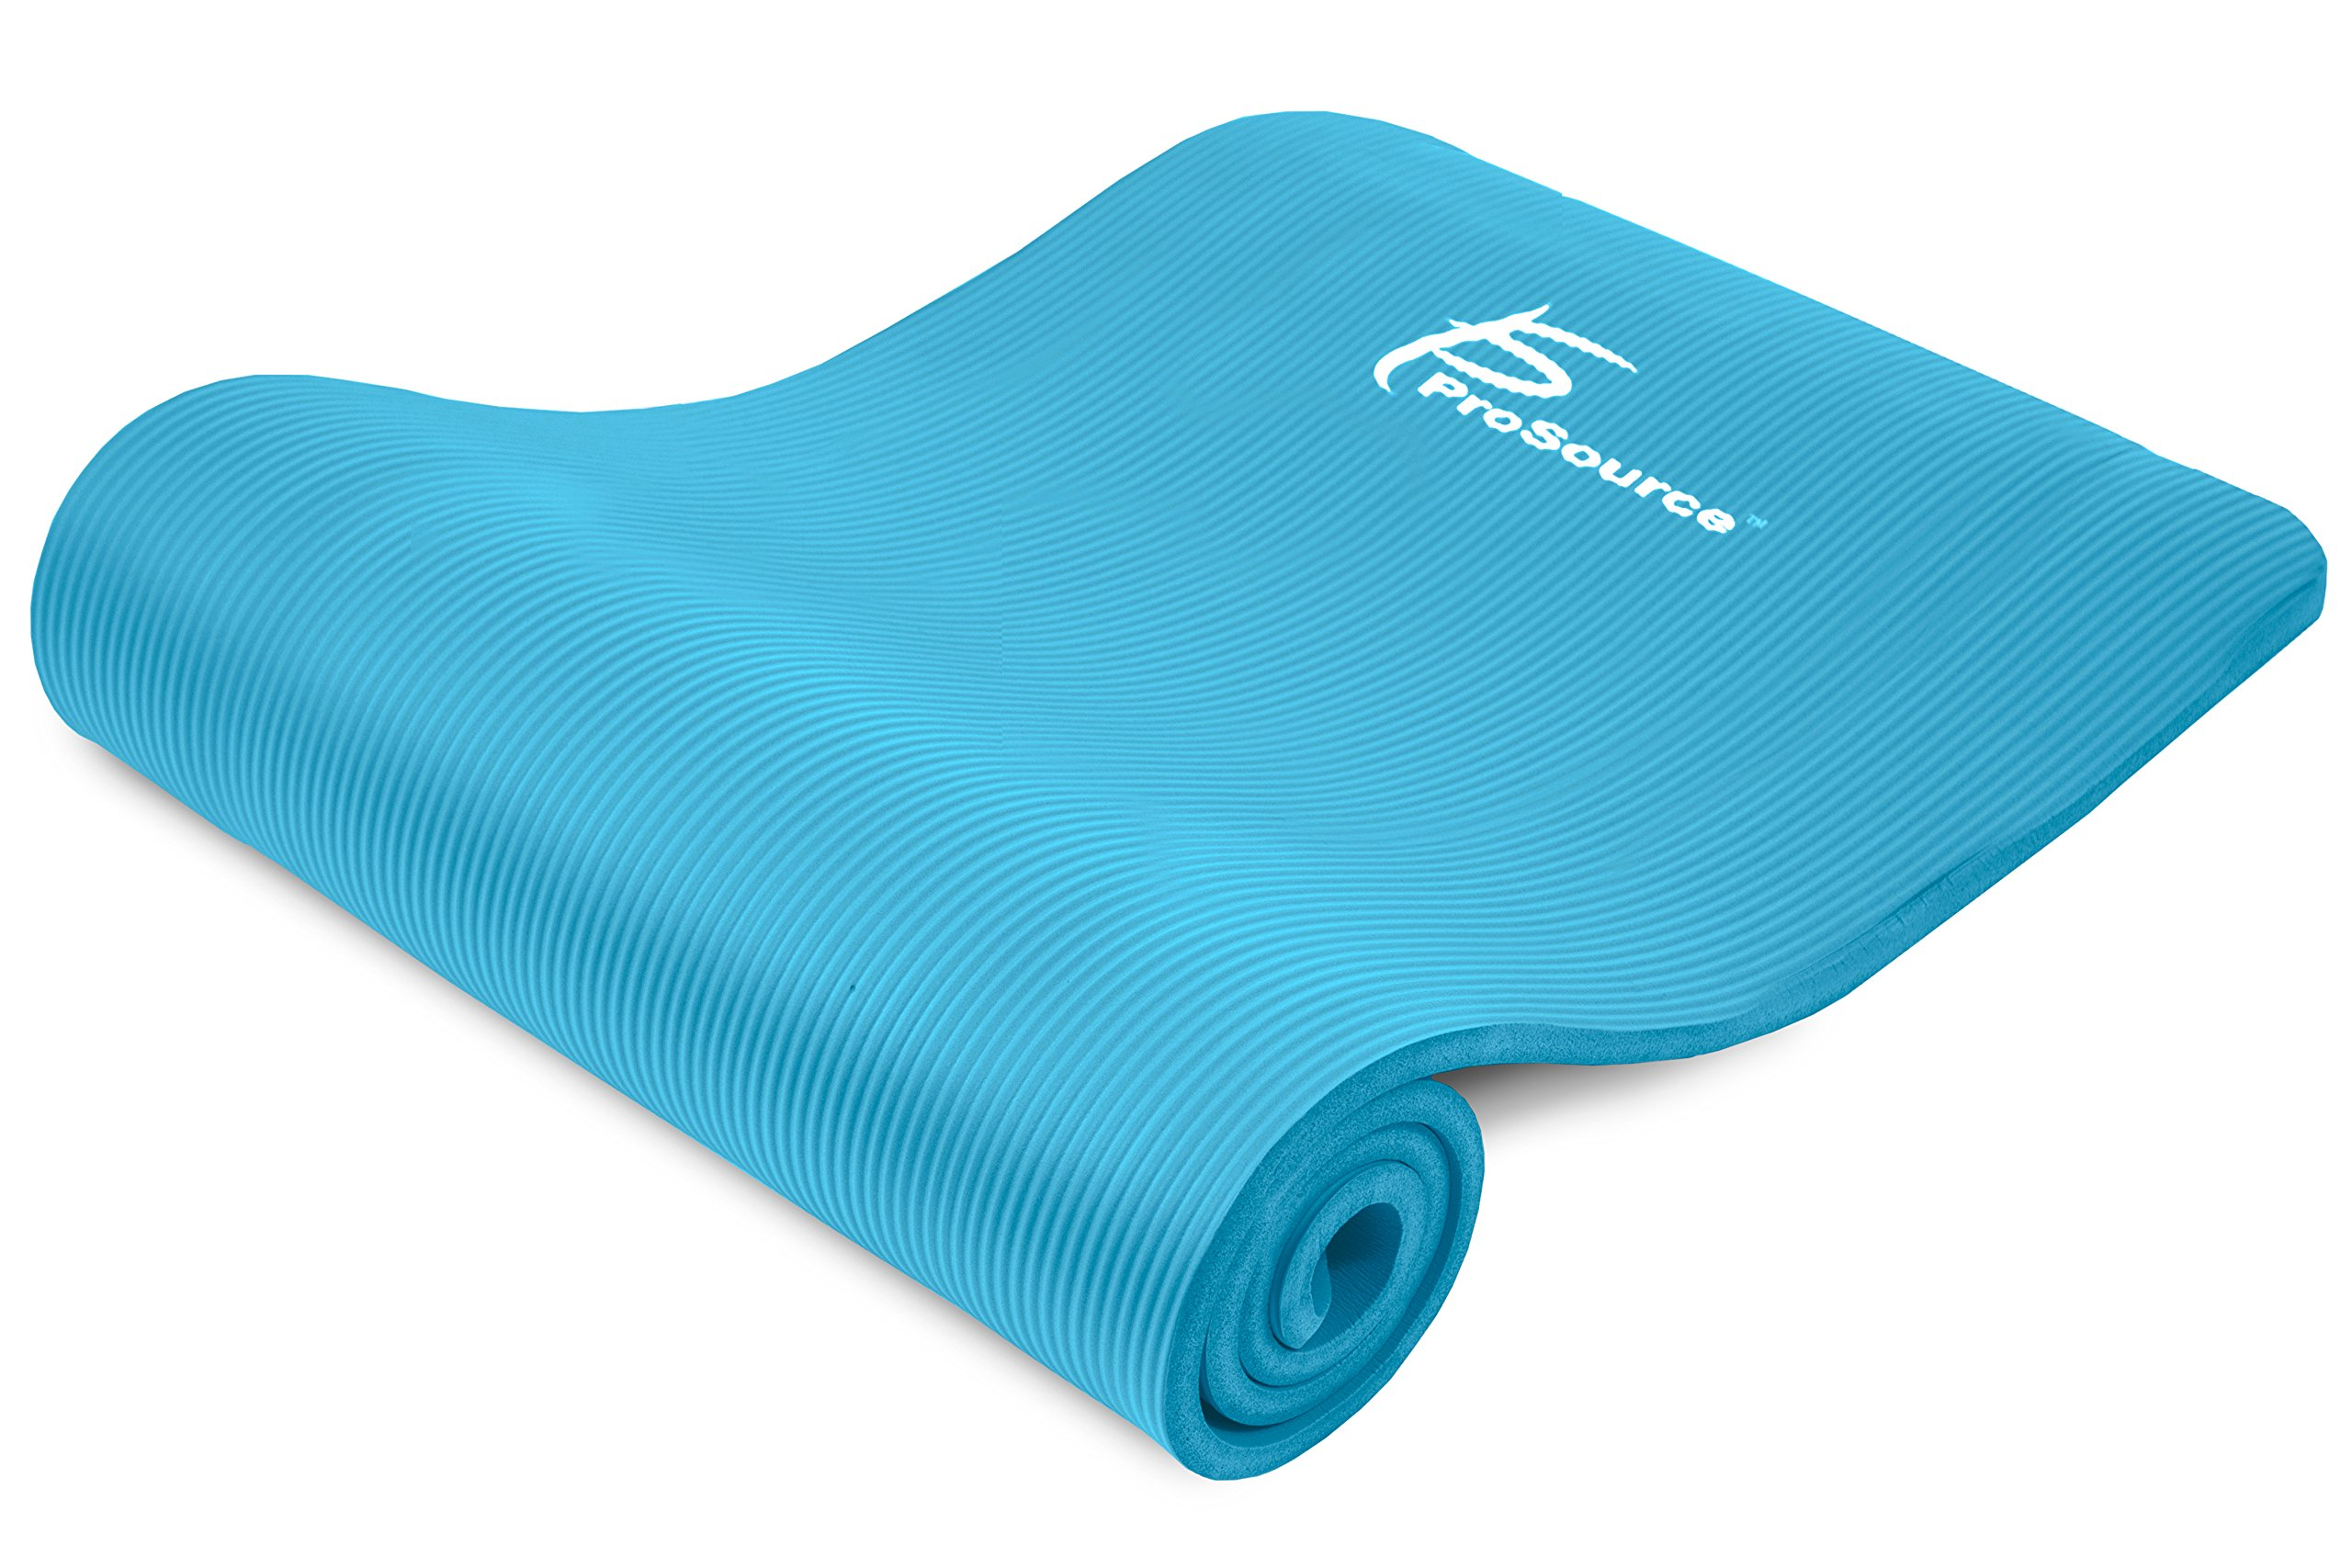 ProsourceFit Extra Thick Yoga and Pilates Mat ½'' (13mm), 71-inch Long High Density Exercise Mat with Comfort Foam and Carrying Strap, Aqua